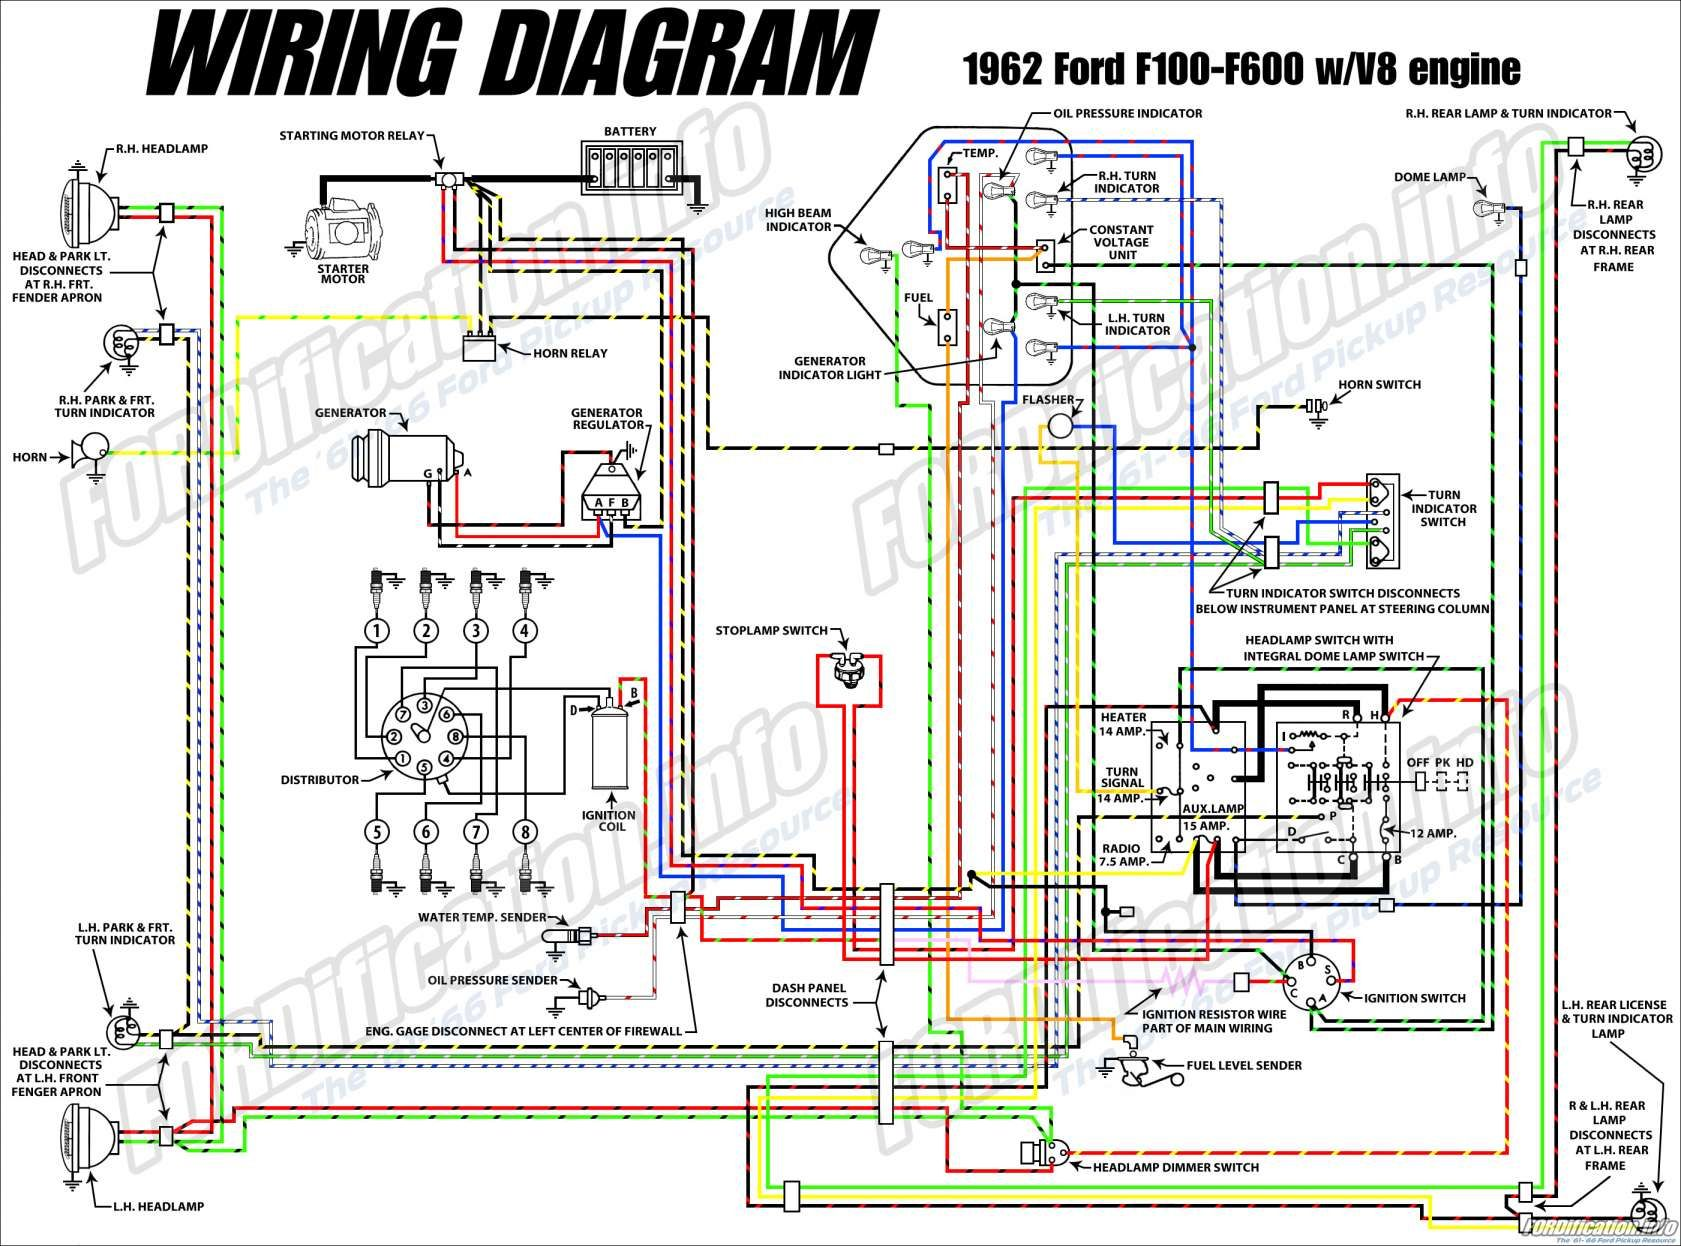 15 1959 Ford Truck Wiring Diagram Truck Diagram Wiringg Net In 2020 Ford Truck Diagram Trucks